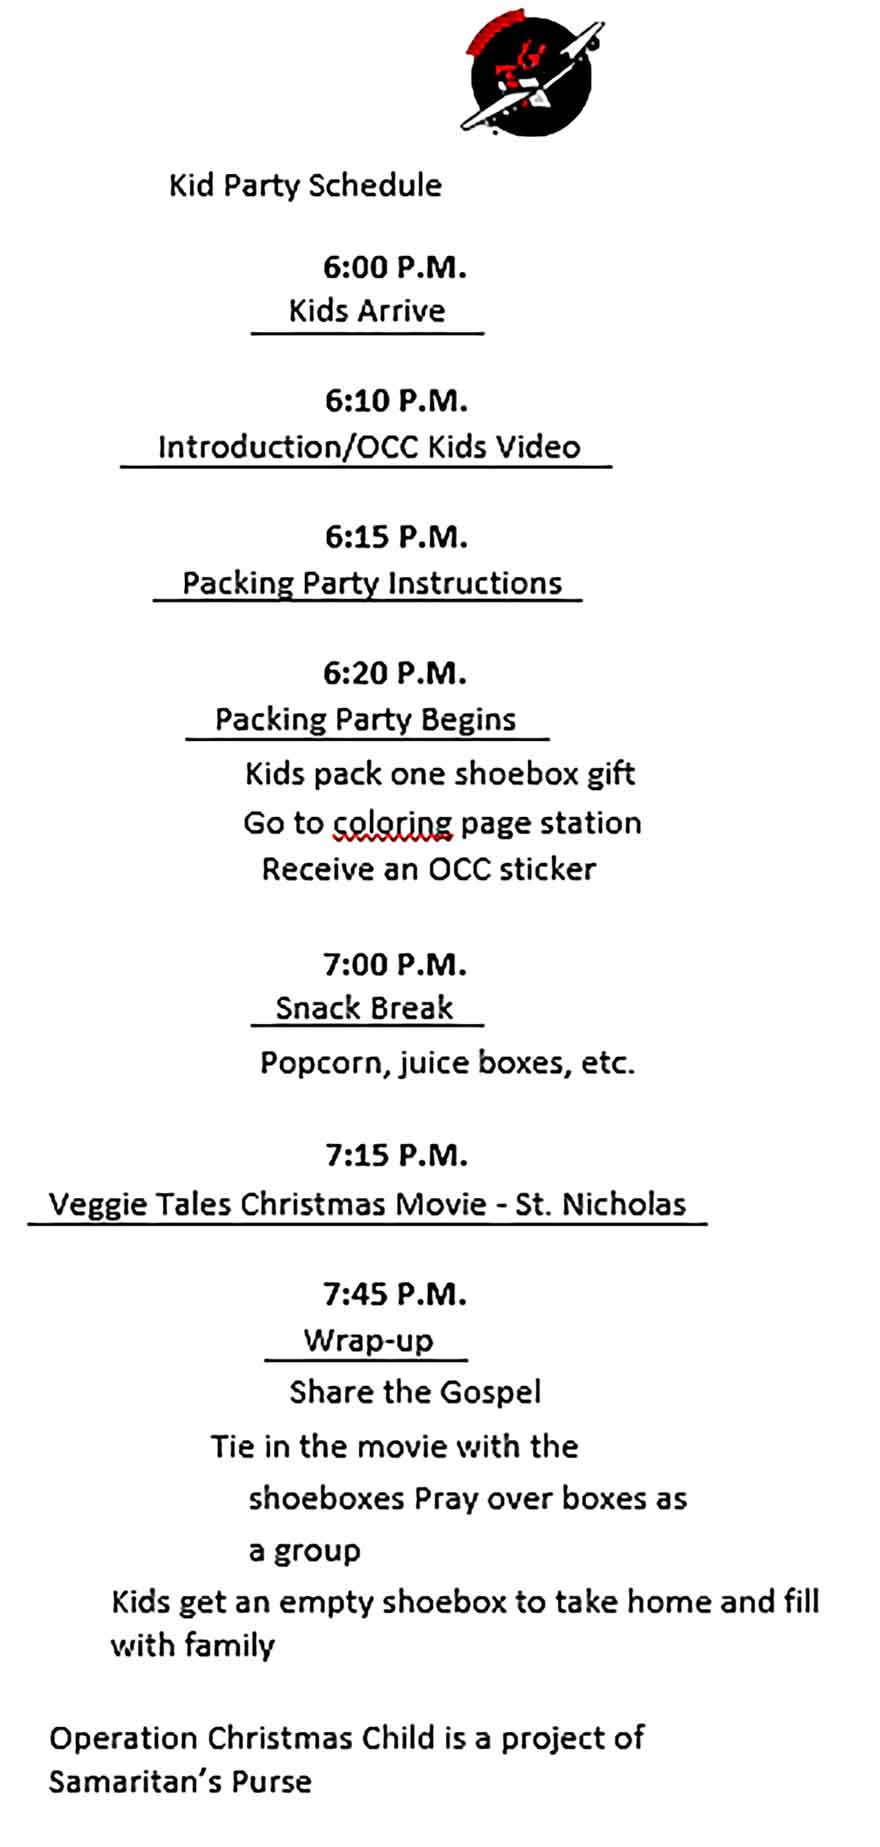 Template Kids Party Schedule Sample